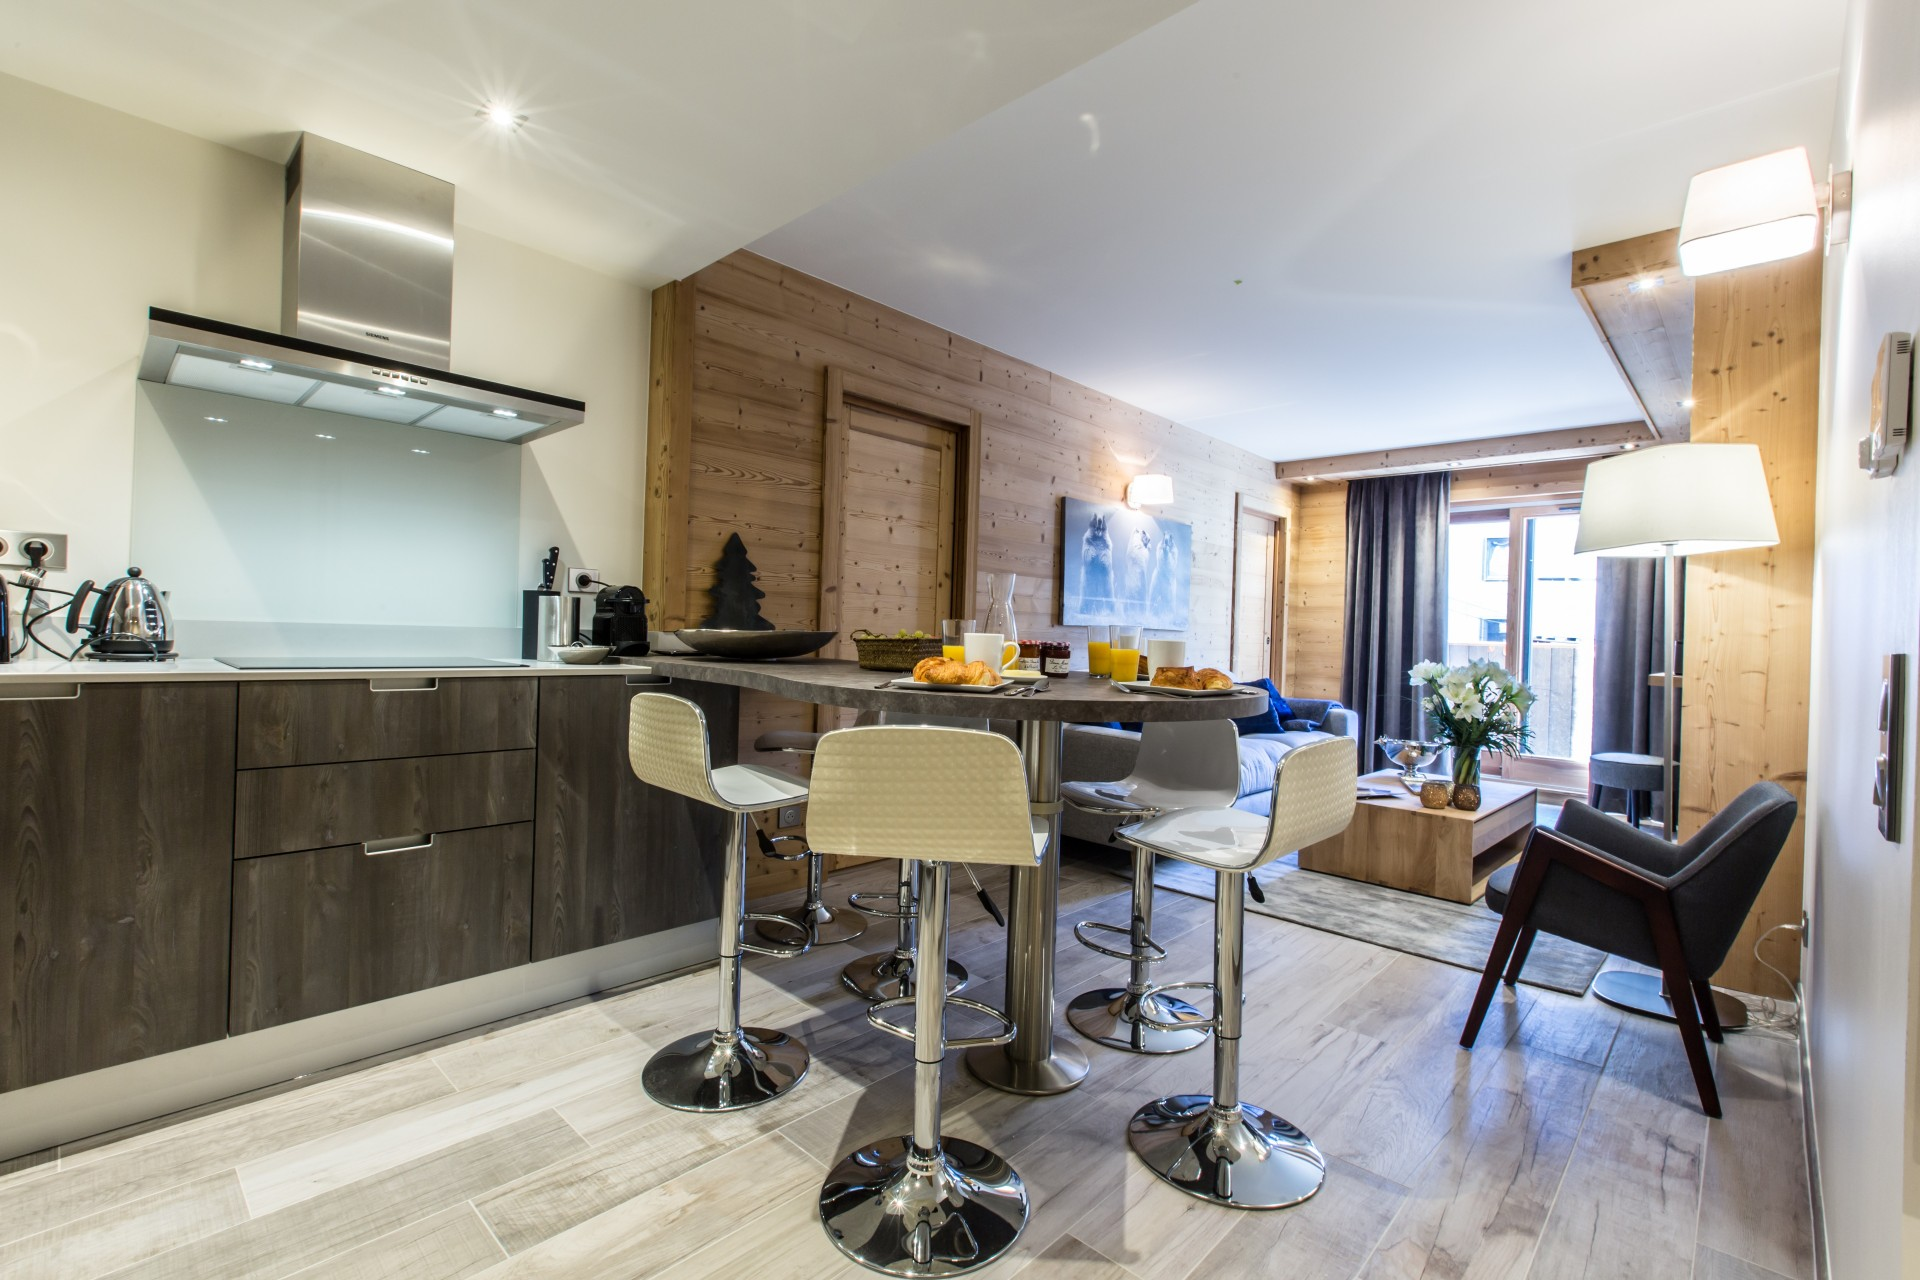 Courchevel 1650 Location Appartement Luxe Amicite Salle A Manger